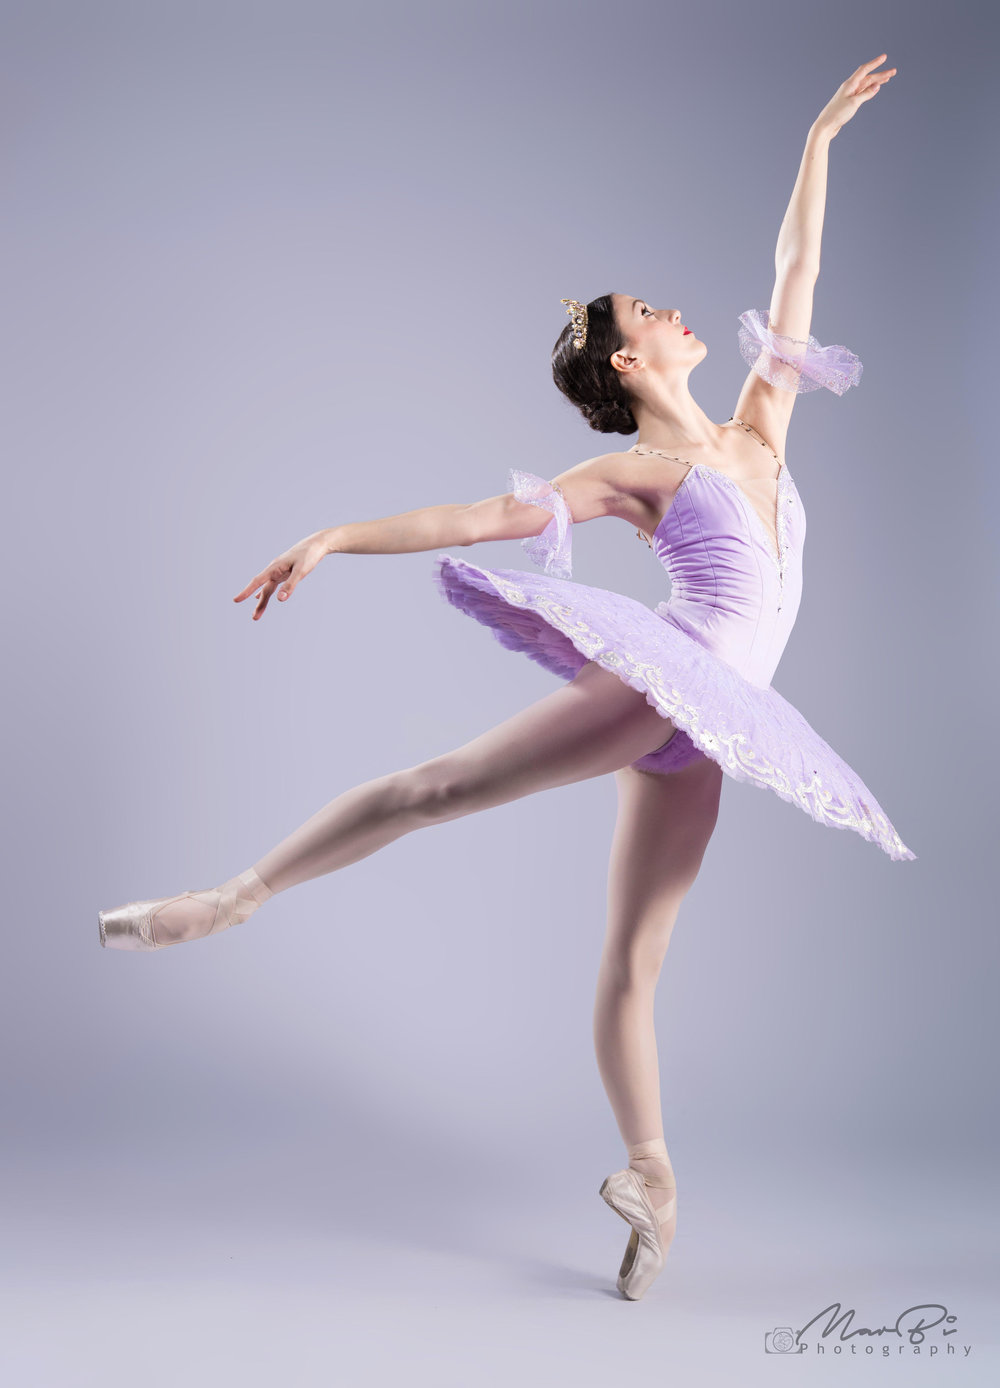 Guest principal artist Katherine Barkman will take on the role of Medora for the first time, alternating with principal dancer Abigail Oliveiro who is also debuting the role. This will be Katherine's farewell performance before joining Washington Ballet after three years with Ballet Manila. Photo by MarBi Photography